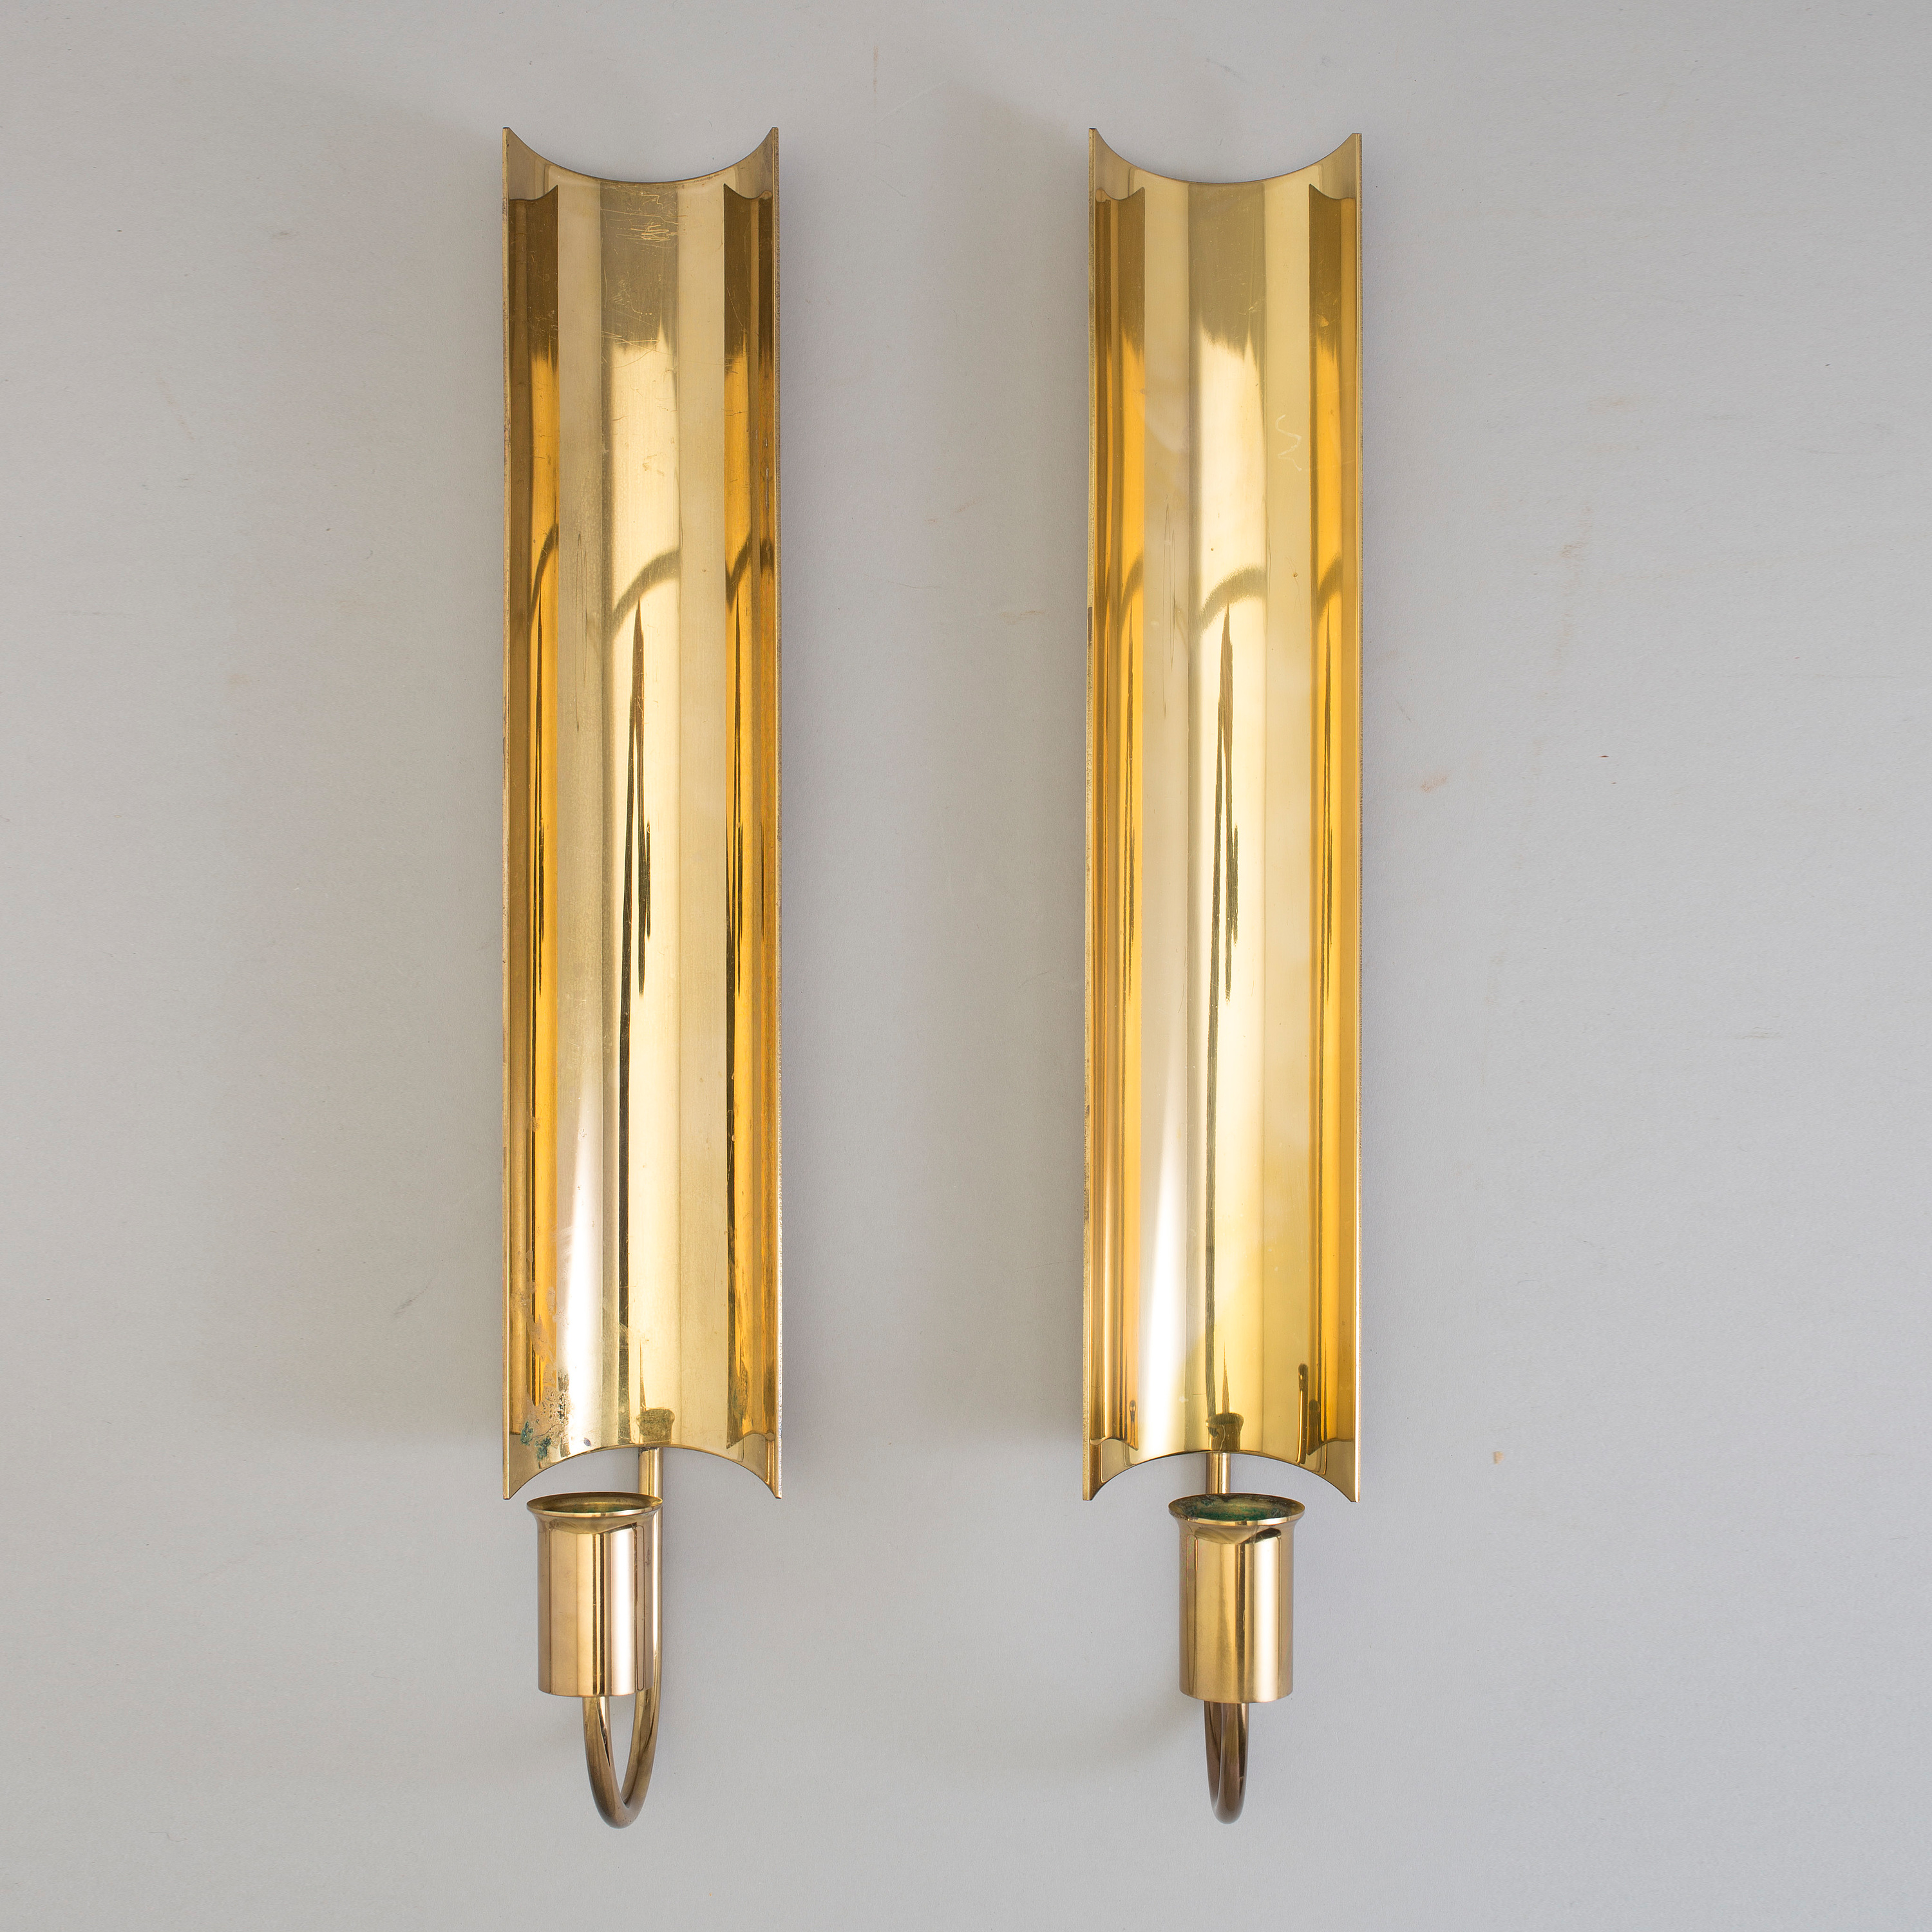 fabric white design awesome sconces finish brass aged with sconce pleated fistures shade and switches wall